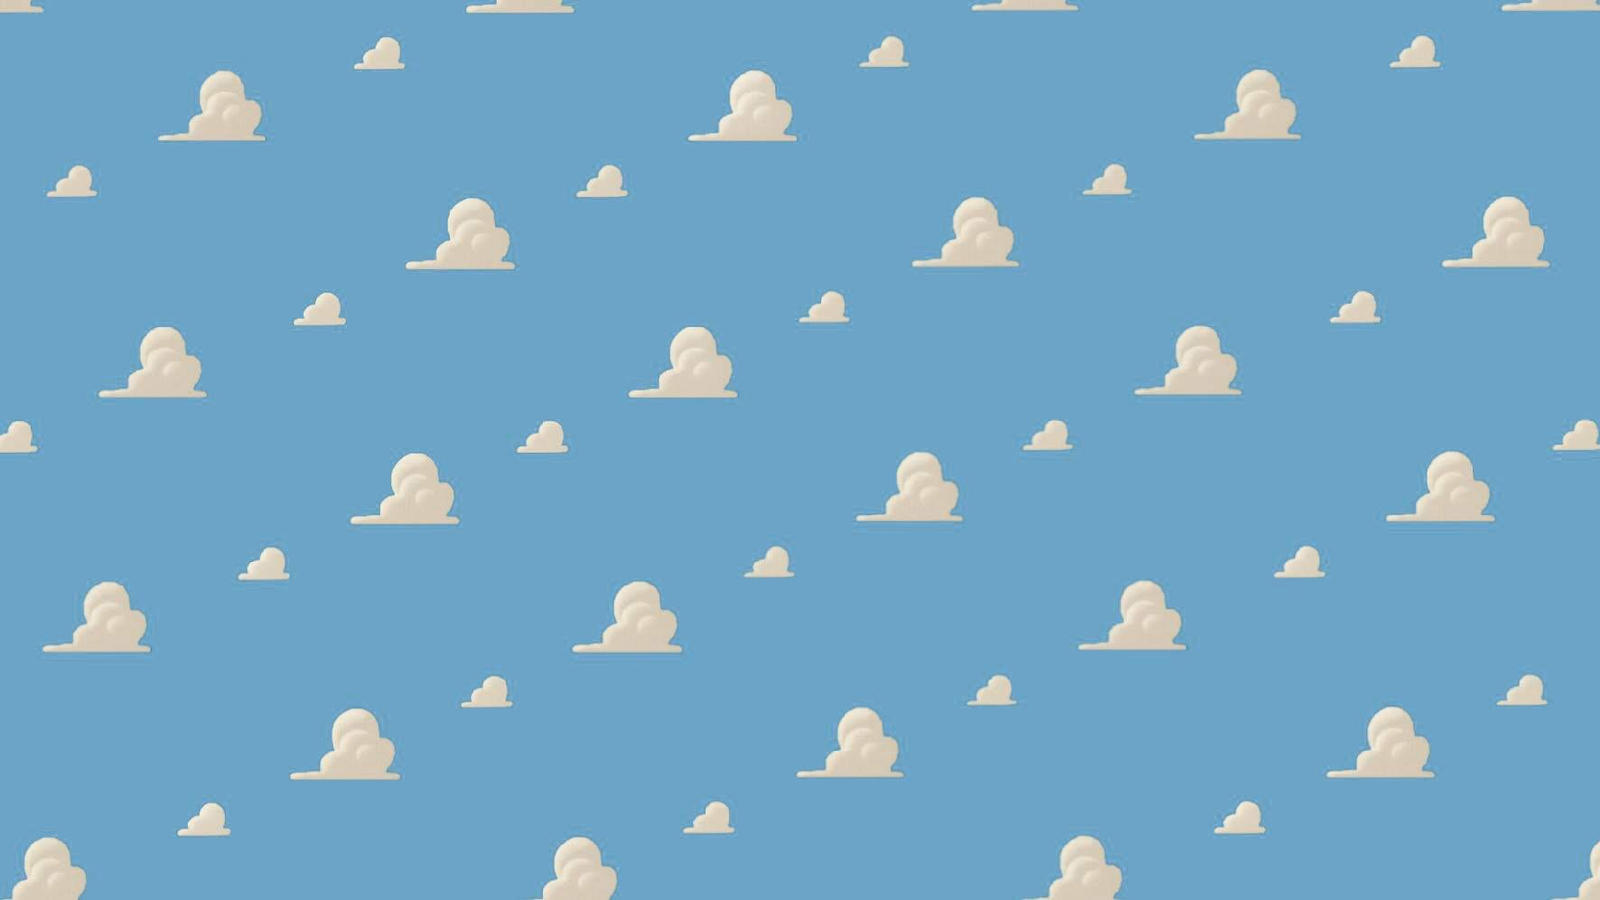 Toy Story Cloud Wallpaper By Luxojr888 On Deviantart